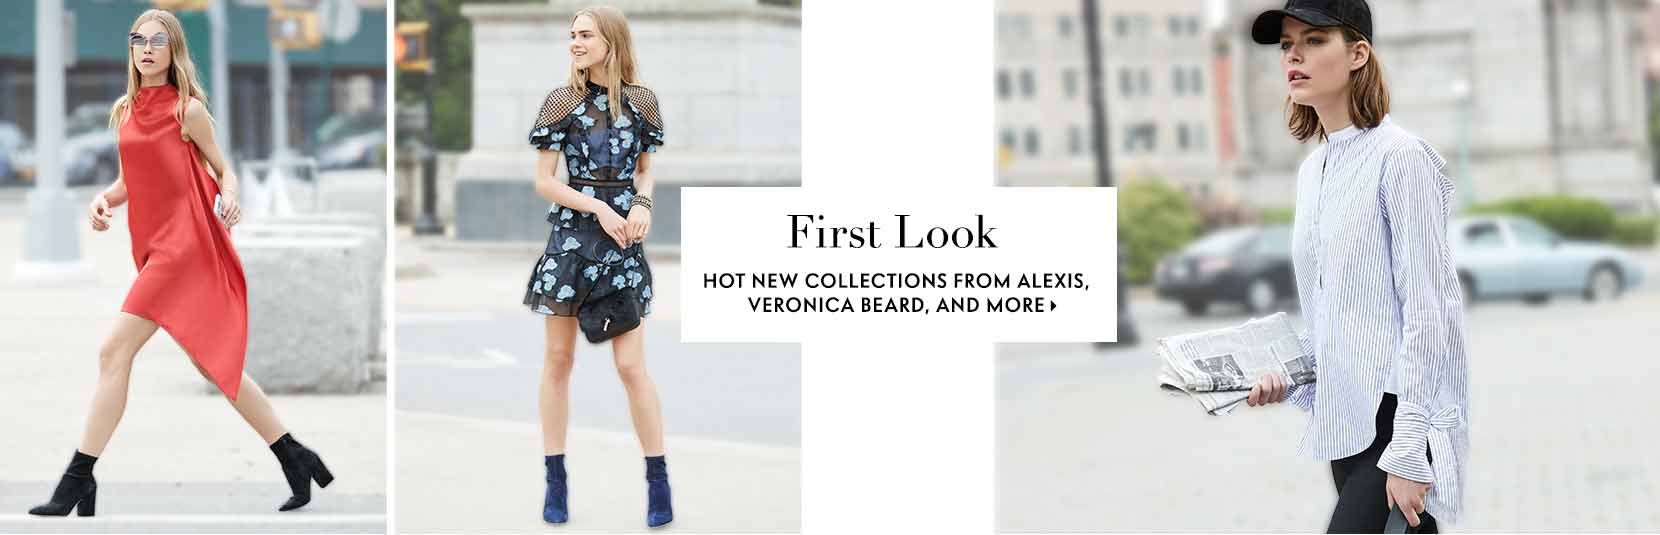 First Look Hot new collections from Alexis, Veronica Beard, and more